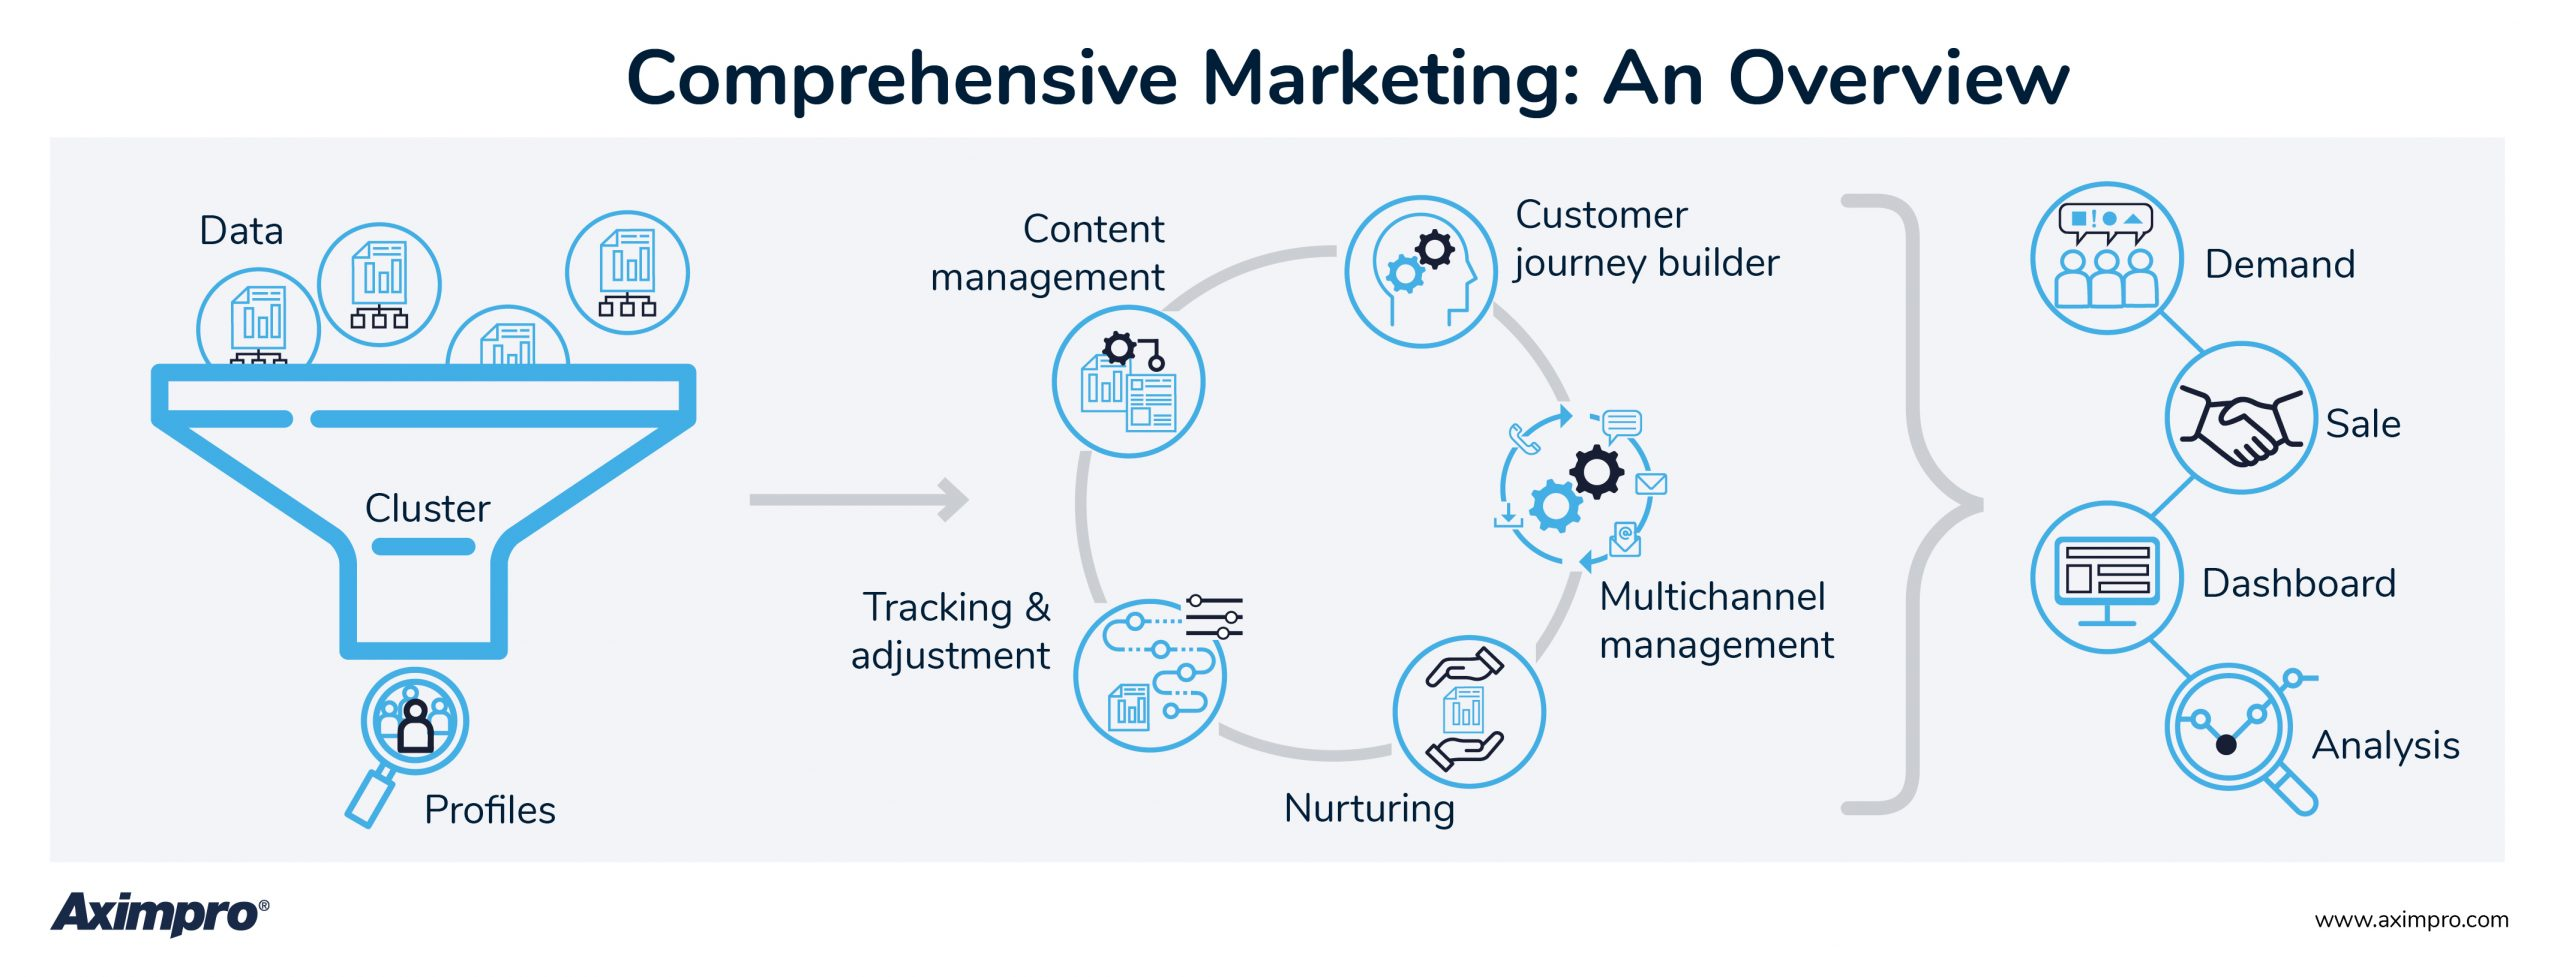 Aximpro Comprehensive Channel Marketing